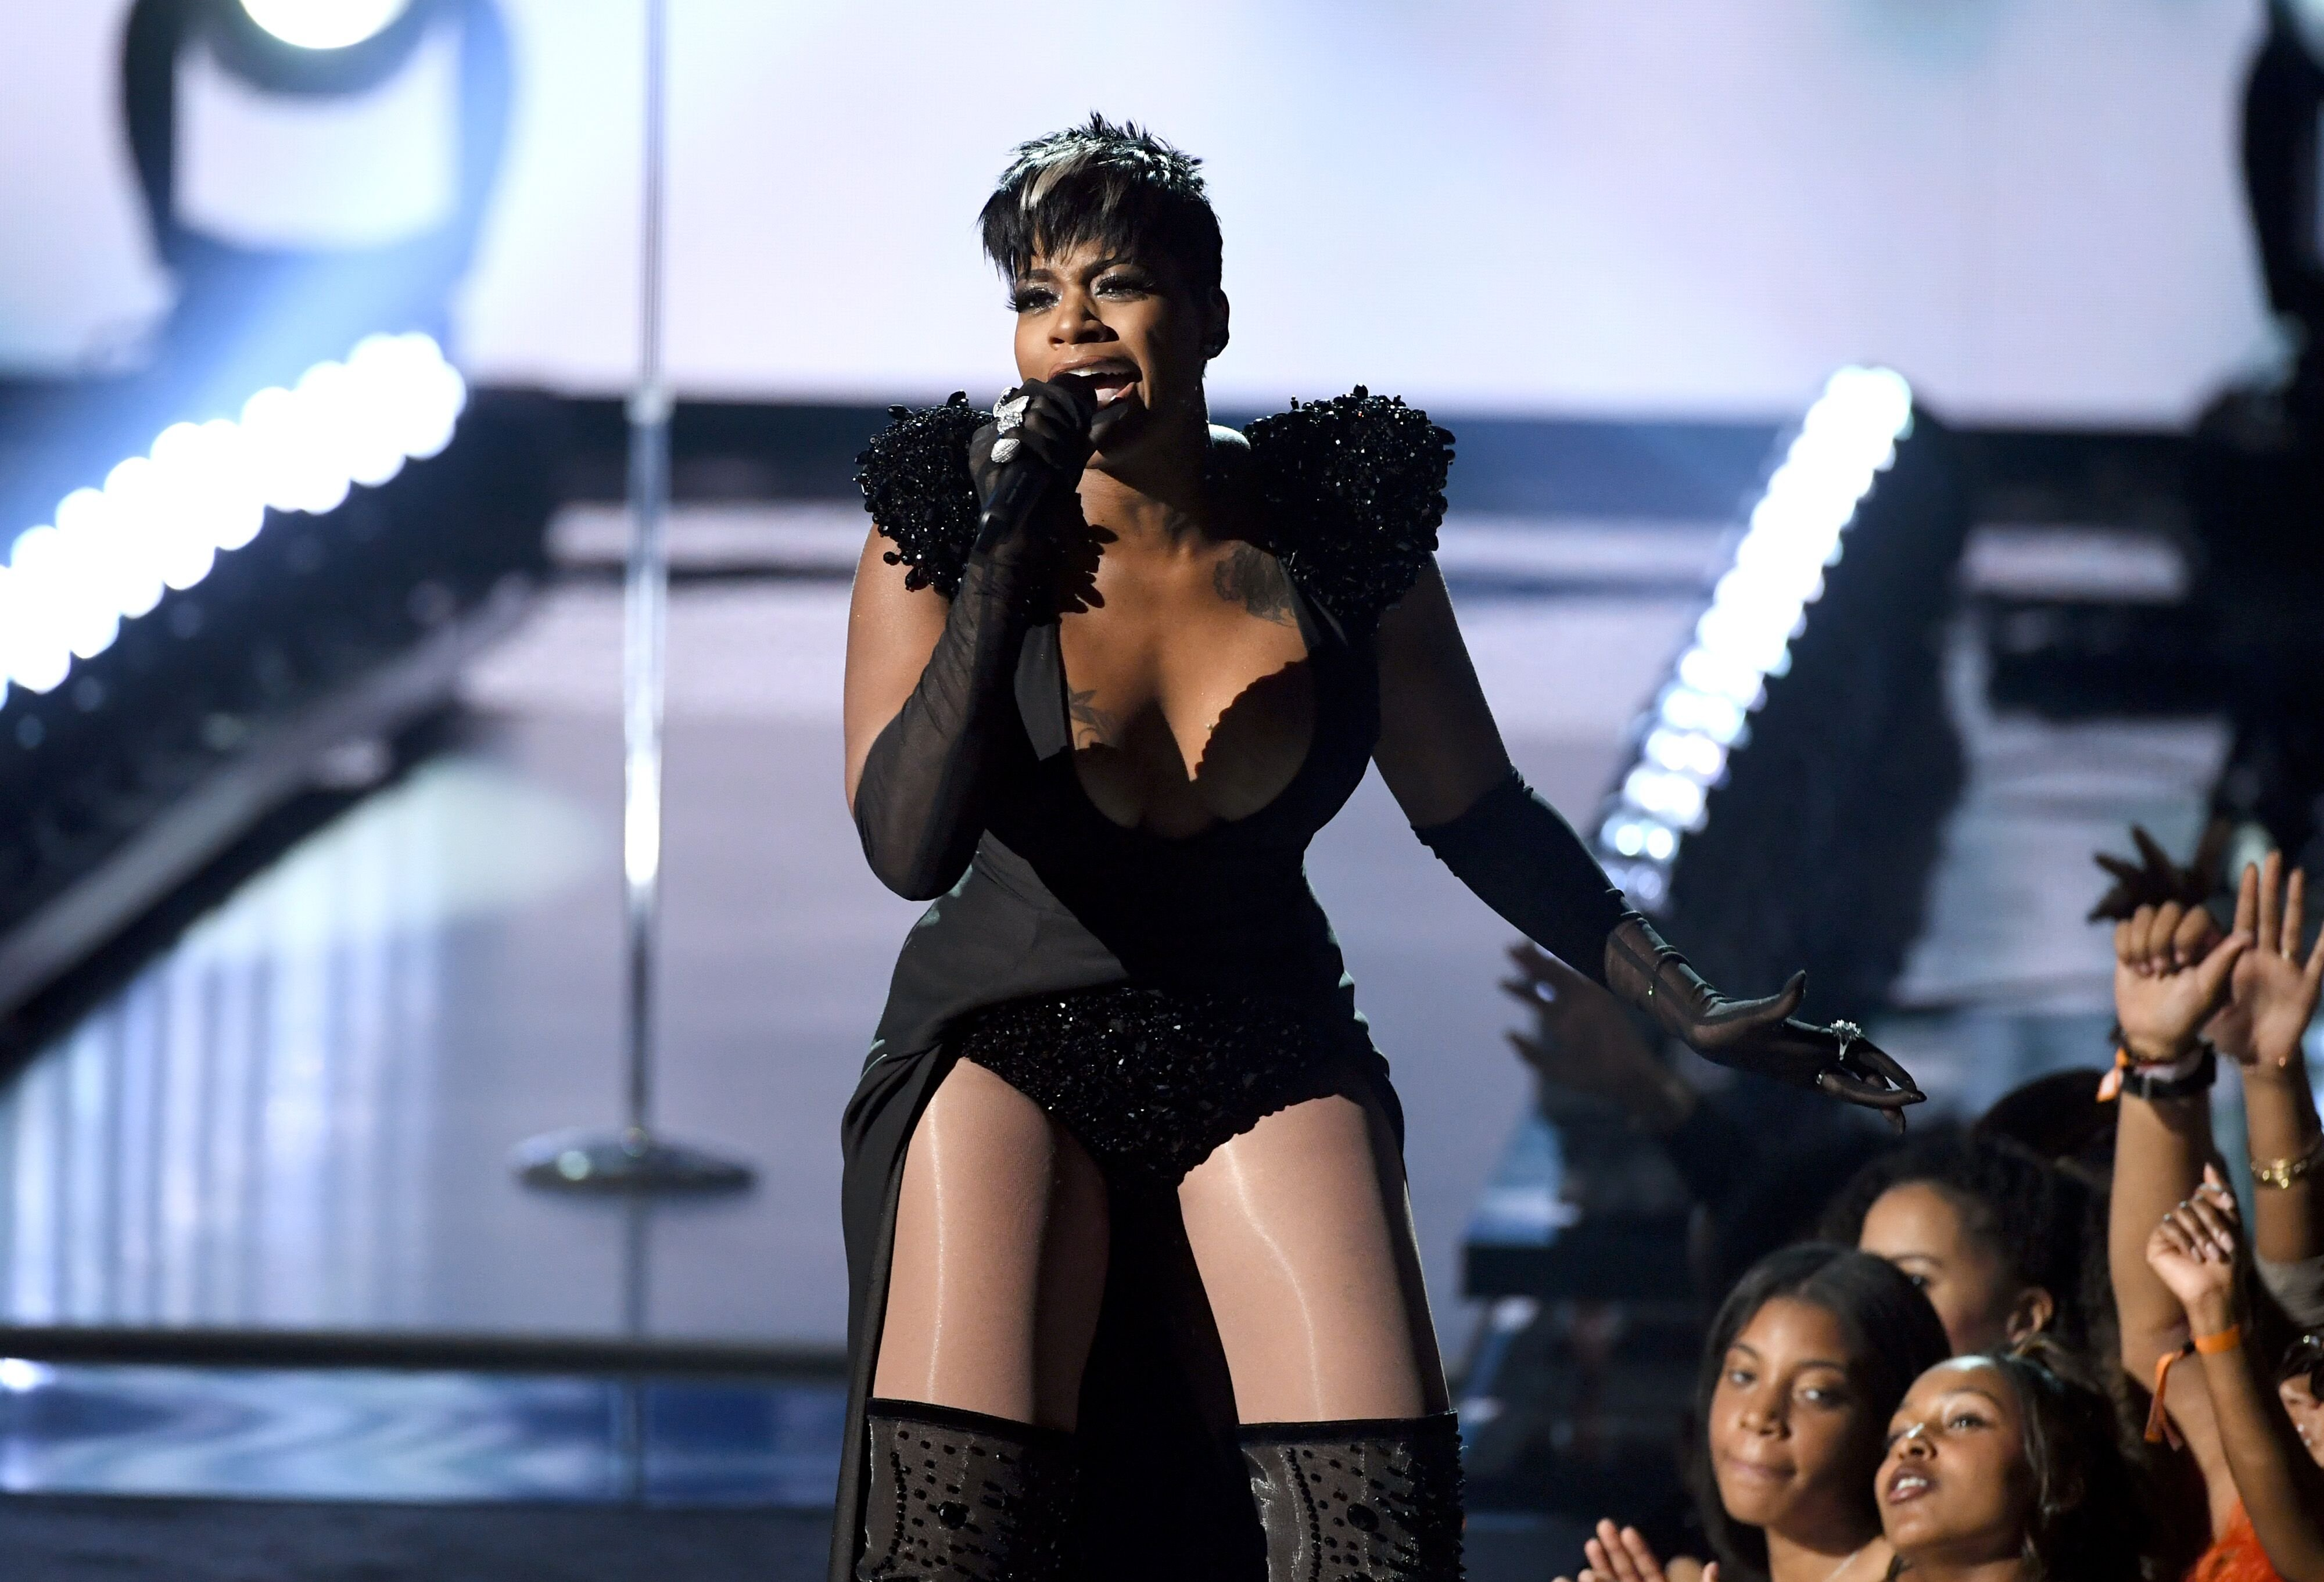 Fantasia Barrino performing at the at the 2019 BET Awards/ Source: Getty Images